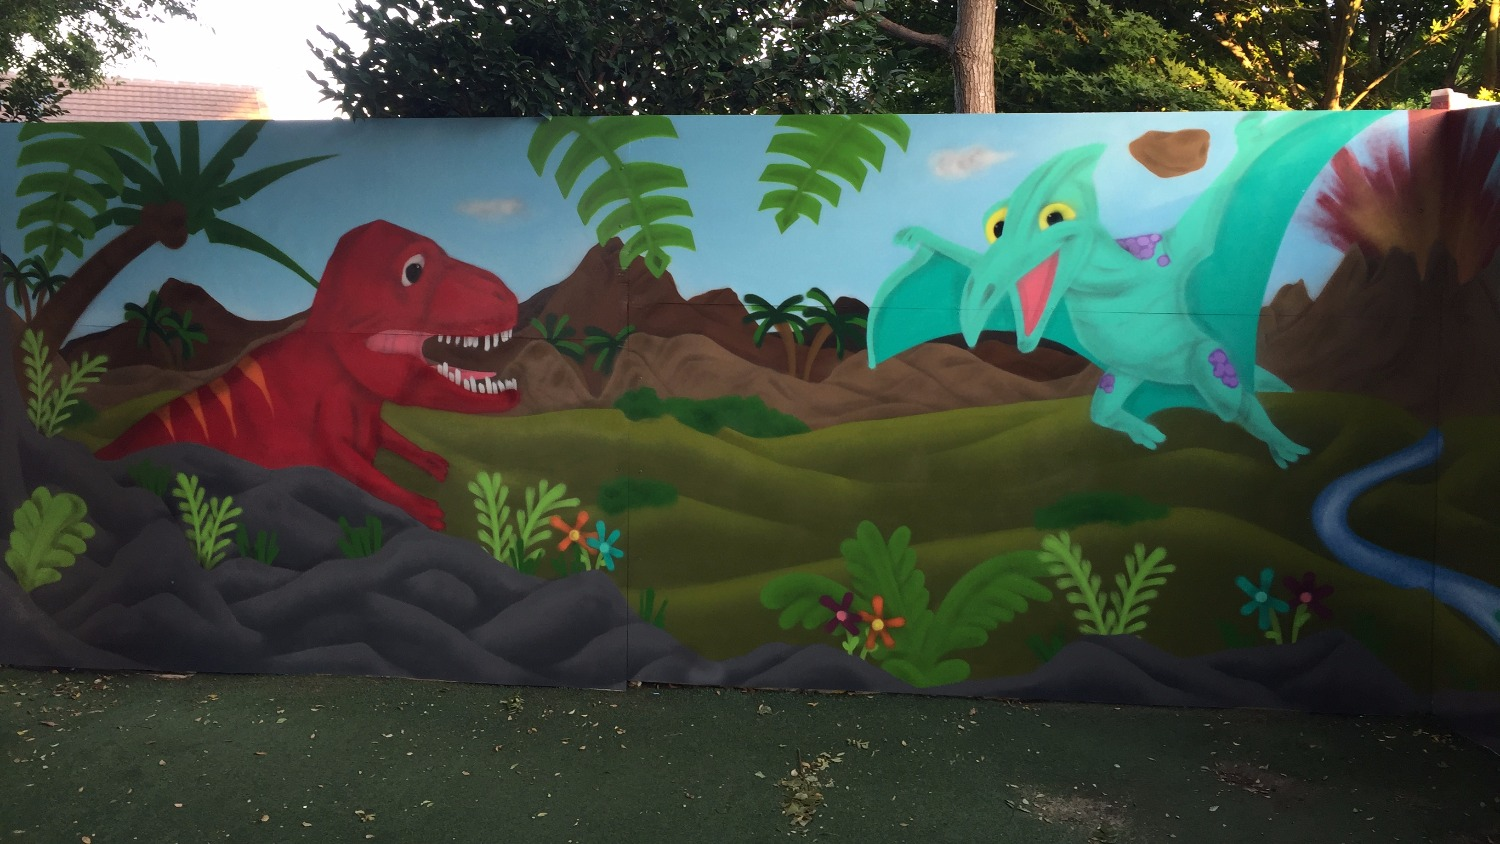 Dinosaur mural painted at preschool